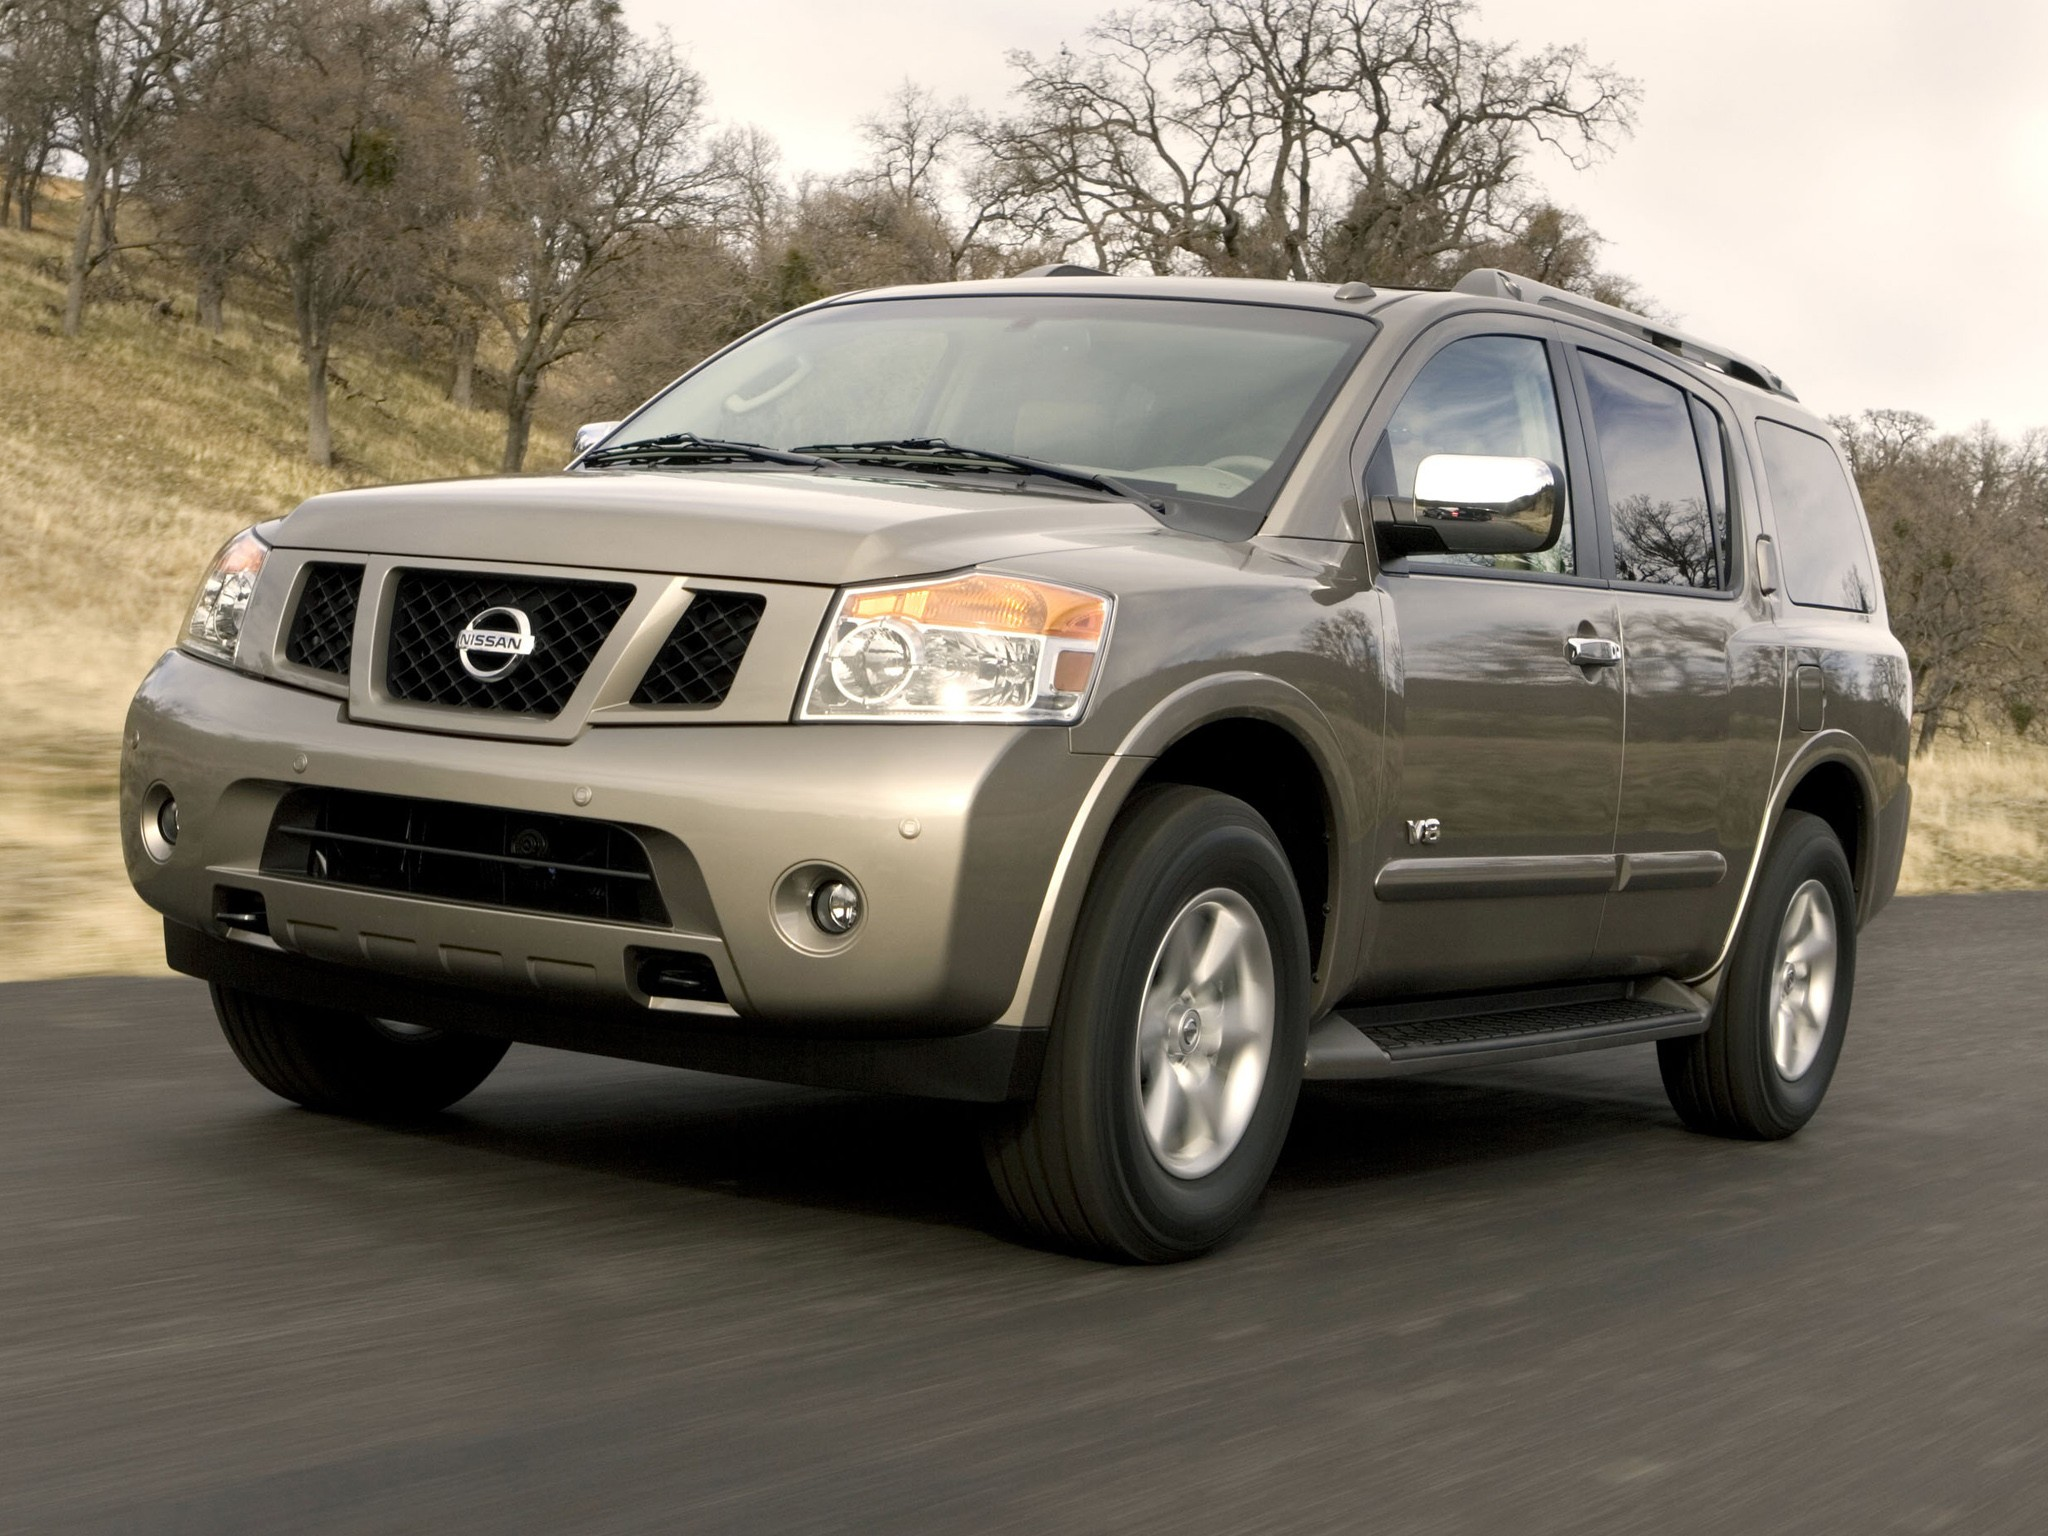 2005 Nissan Pathfinder Repair Manual Download